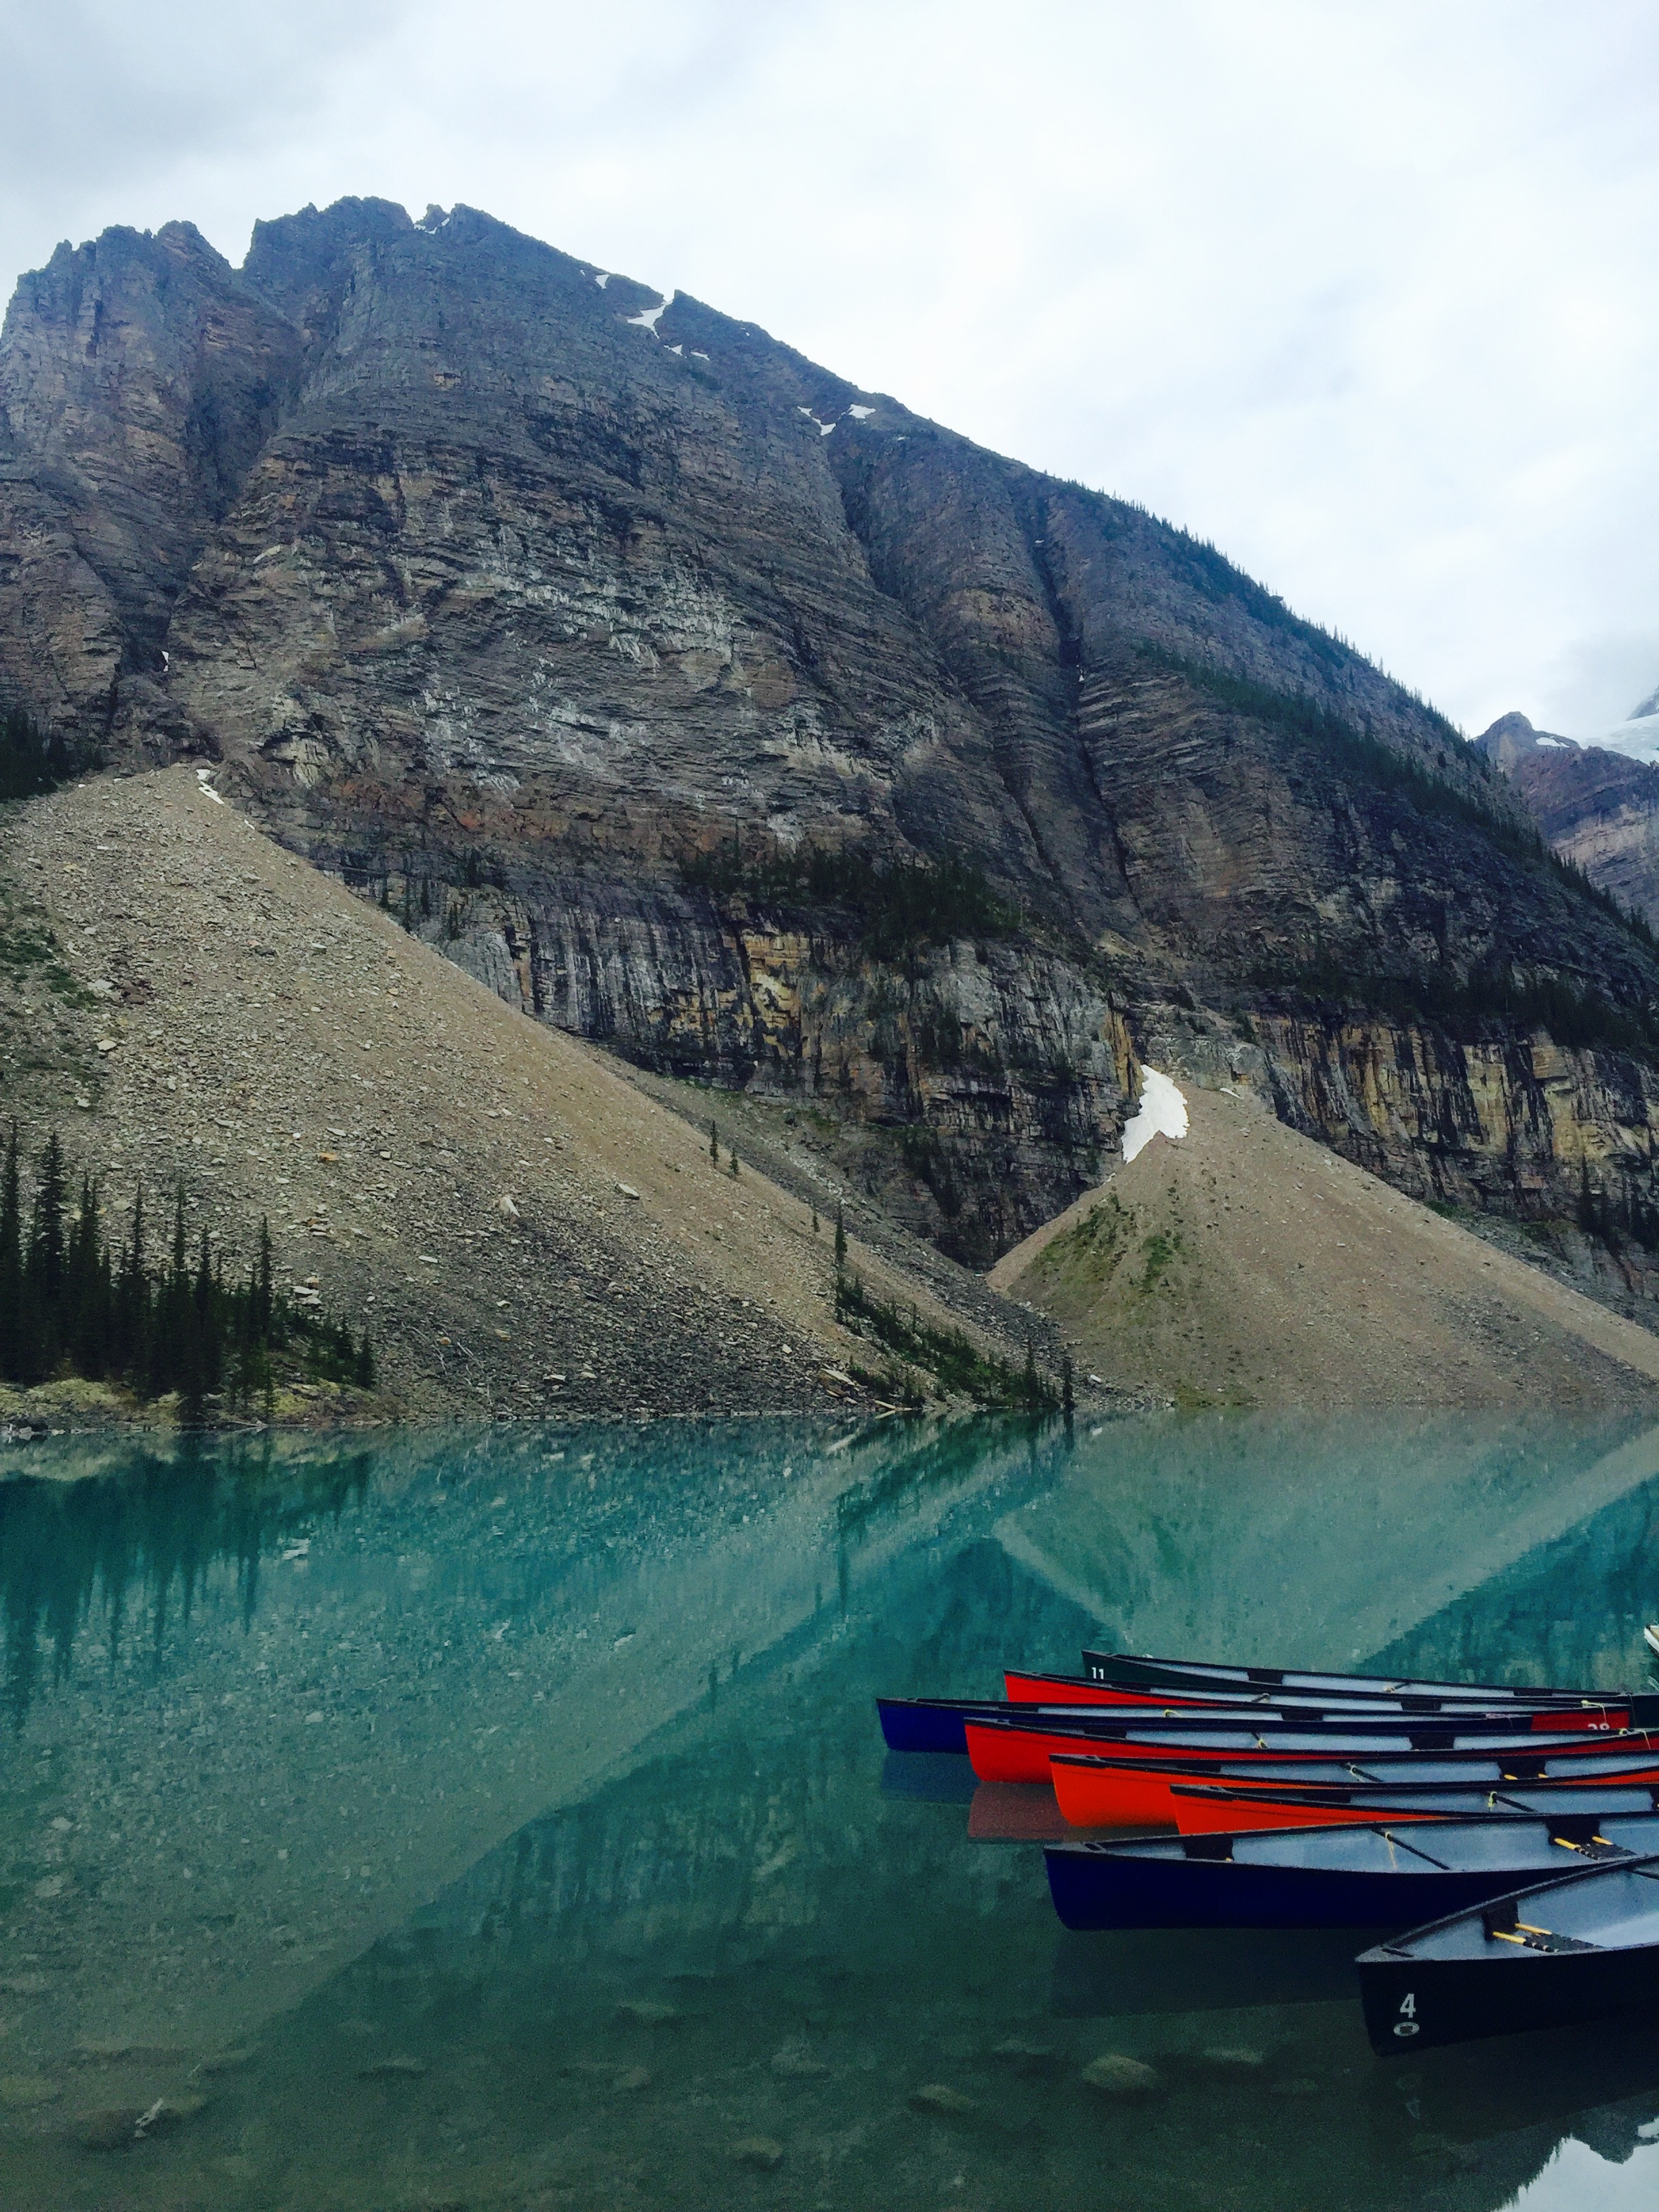 Lake Moraine, where the Larch Valley trailhead begins.